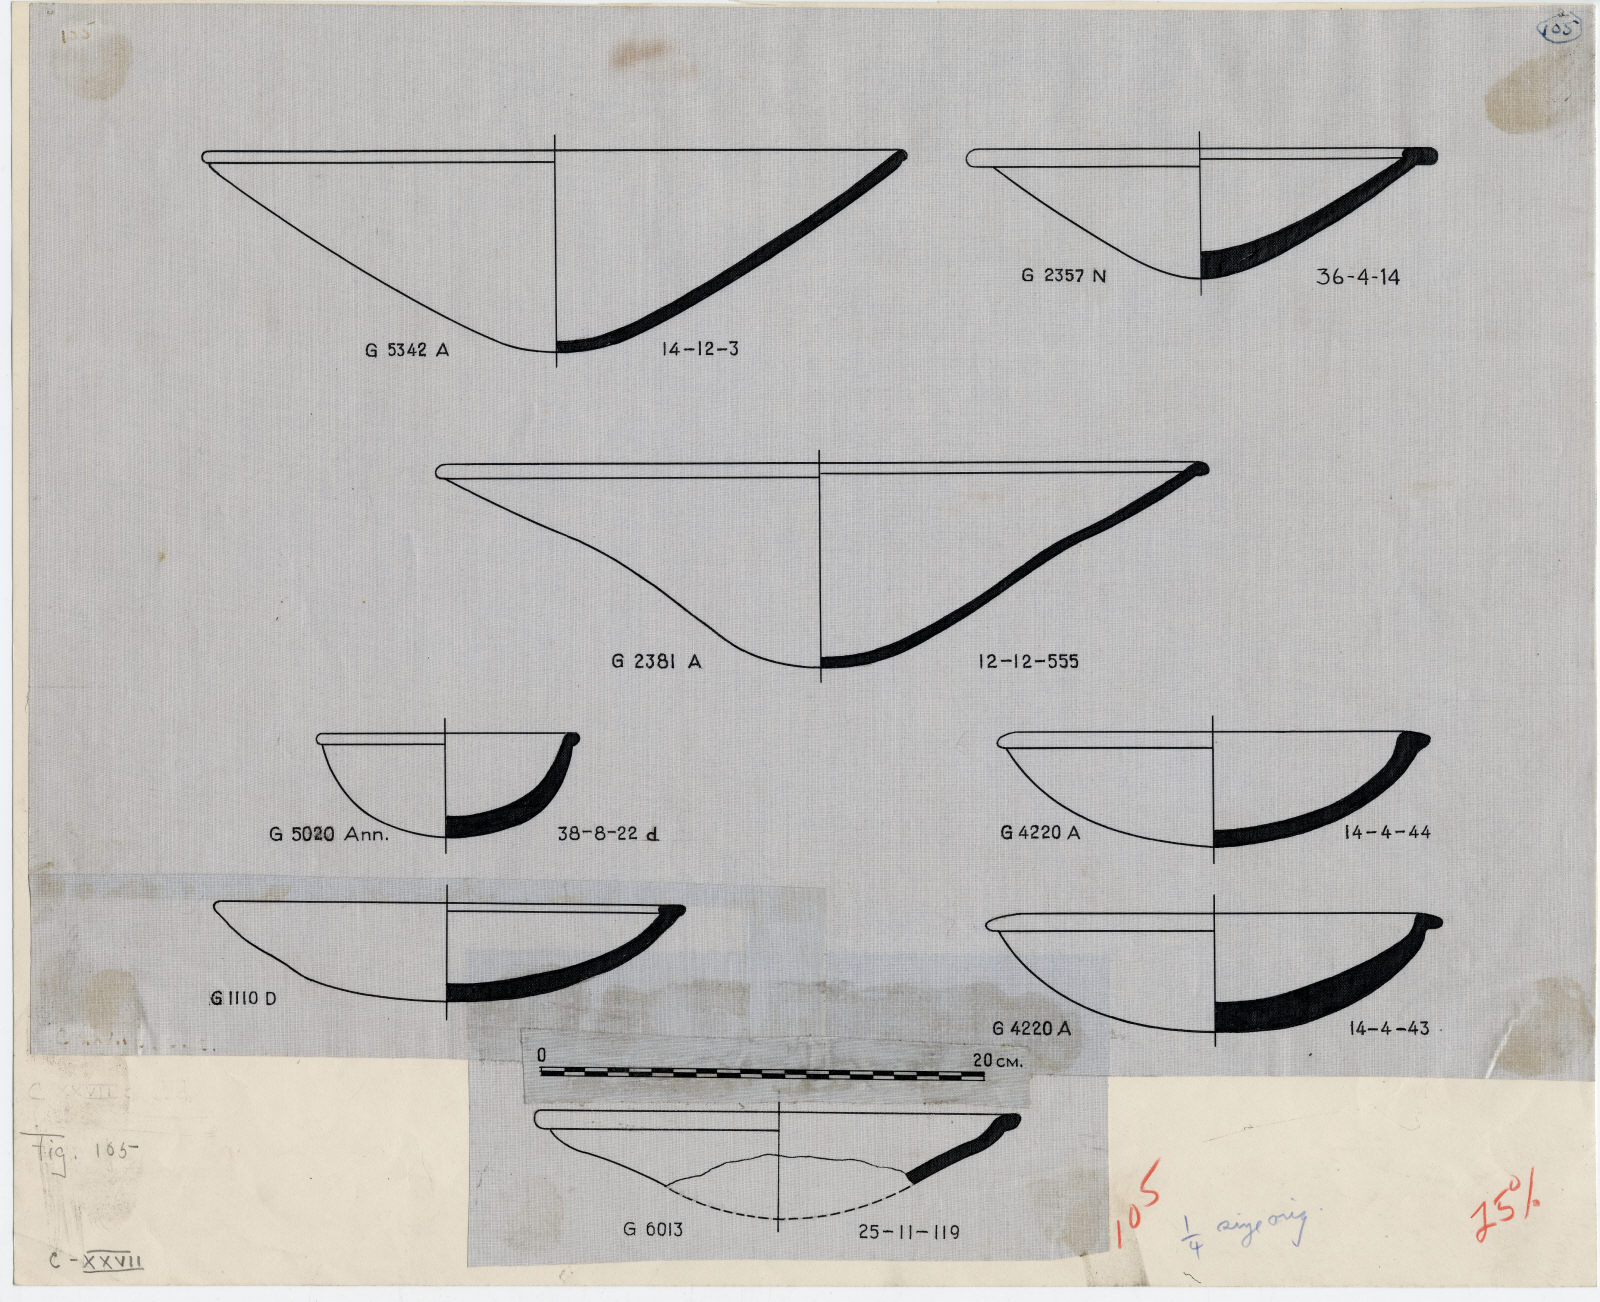 Drawings: Pottery, bowls, from G 1110, Shaft D; G 2357 (= G 5561), Shaft N; G 2381, Shaft A; G 4220, Shaft A; G 5020-Annex; G 5342 (= G 5334), Shaft A; G 6013